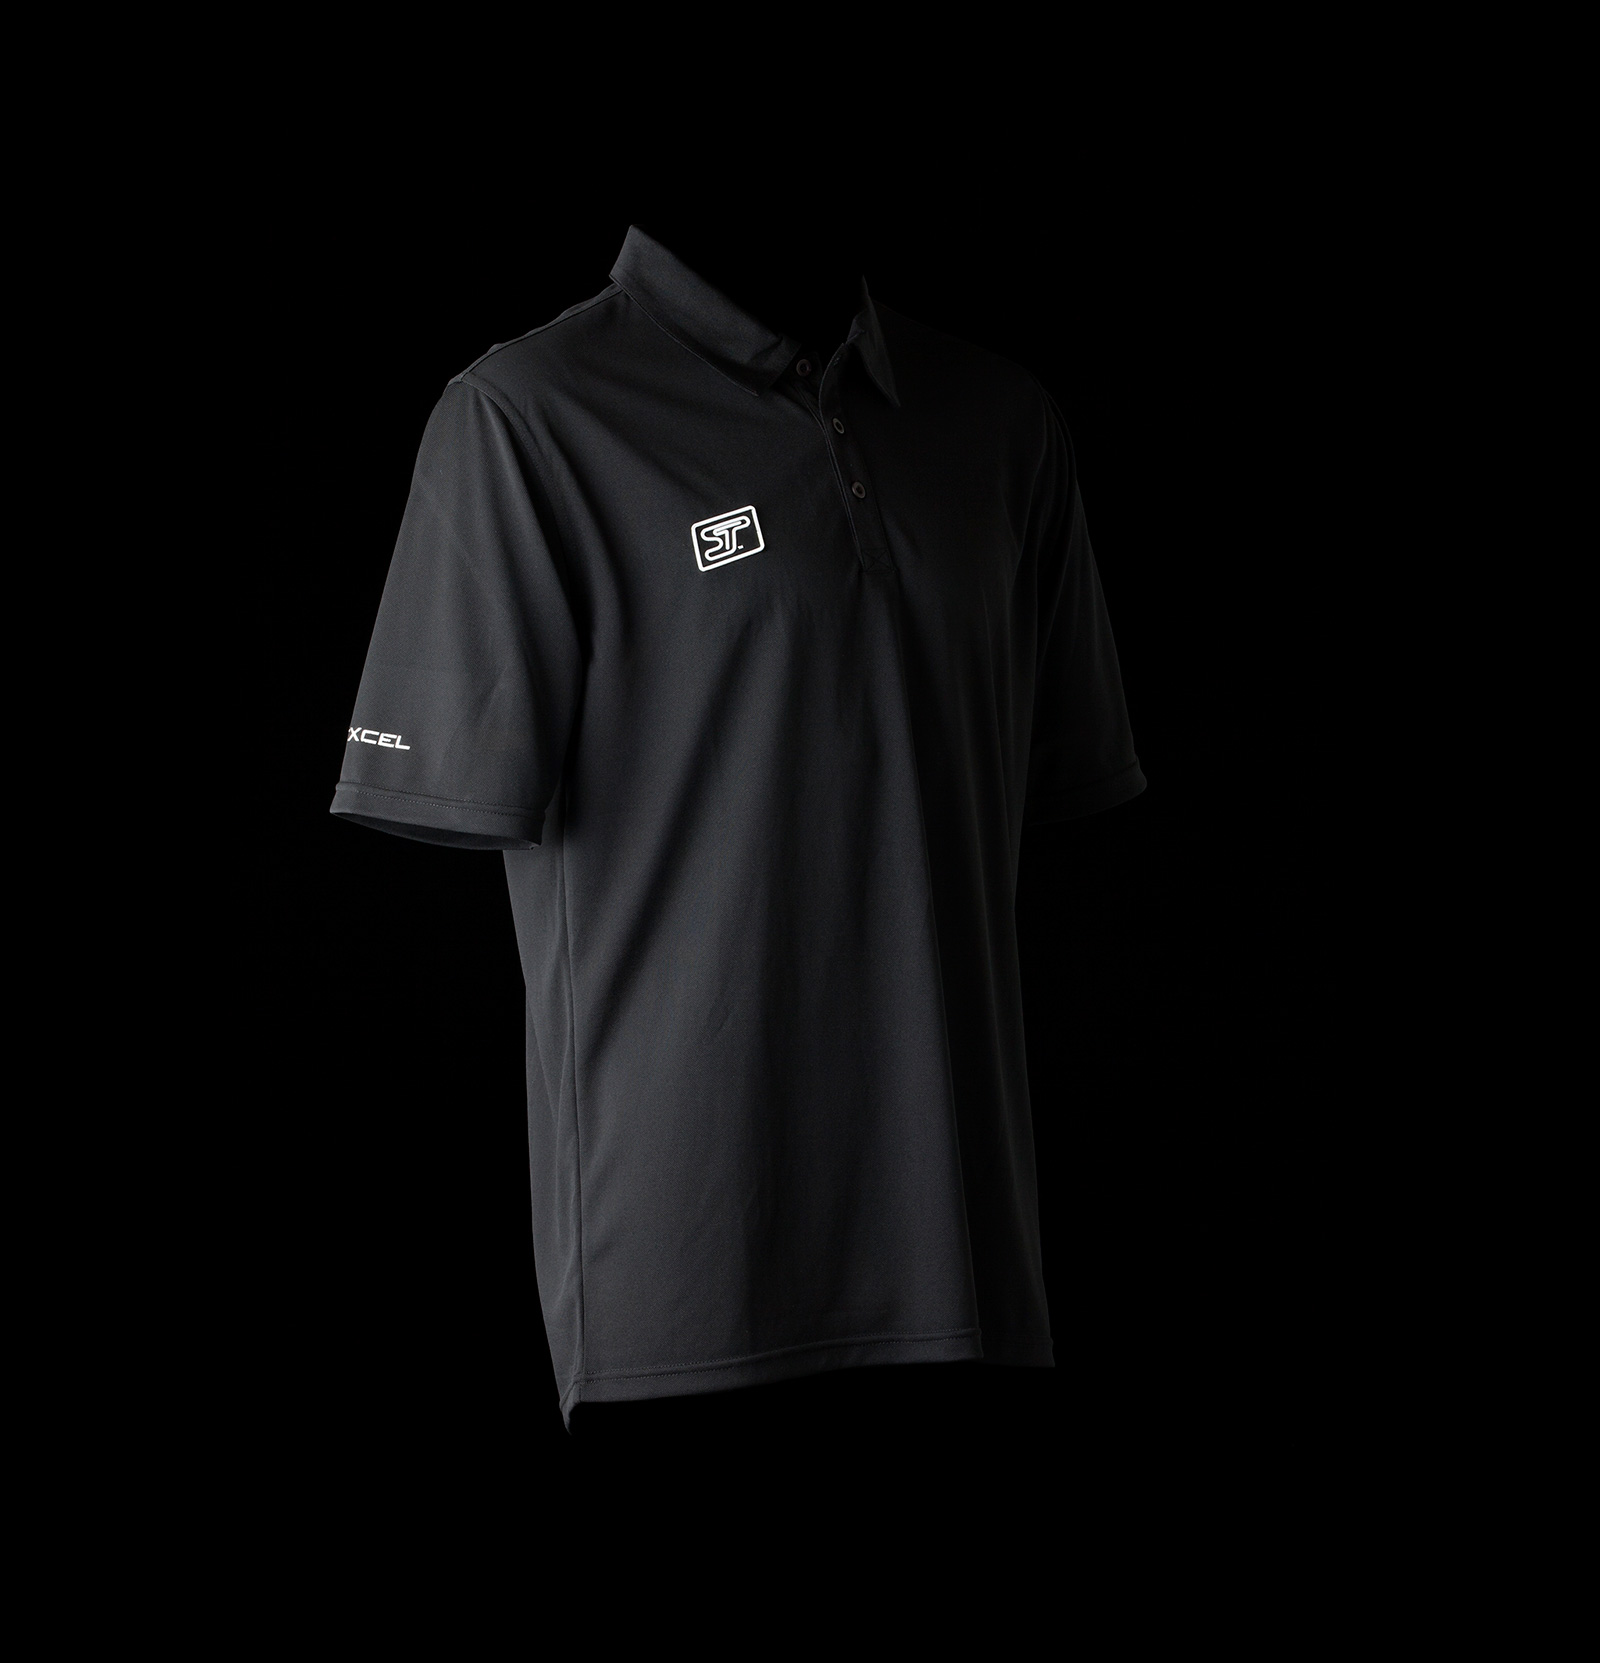 Excel-Polo-Shirt-Promo-66